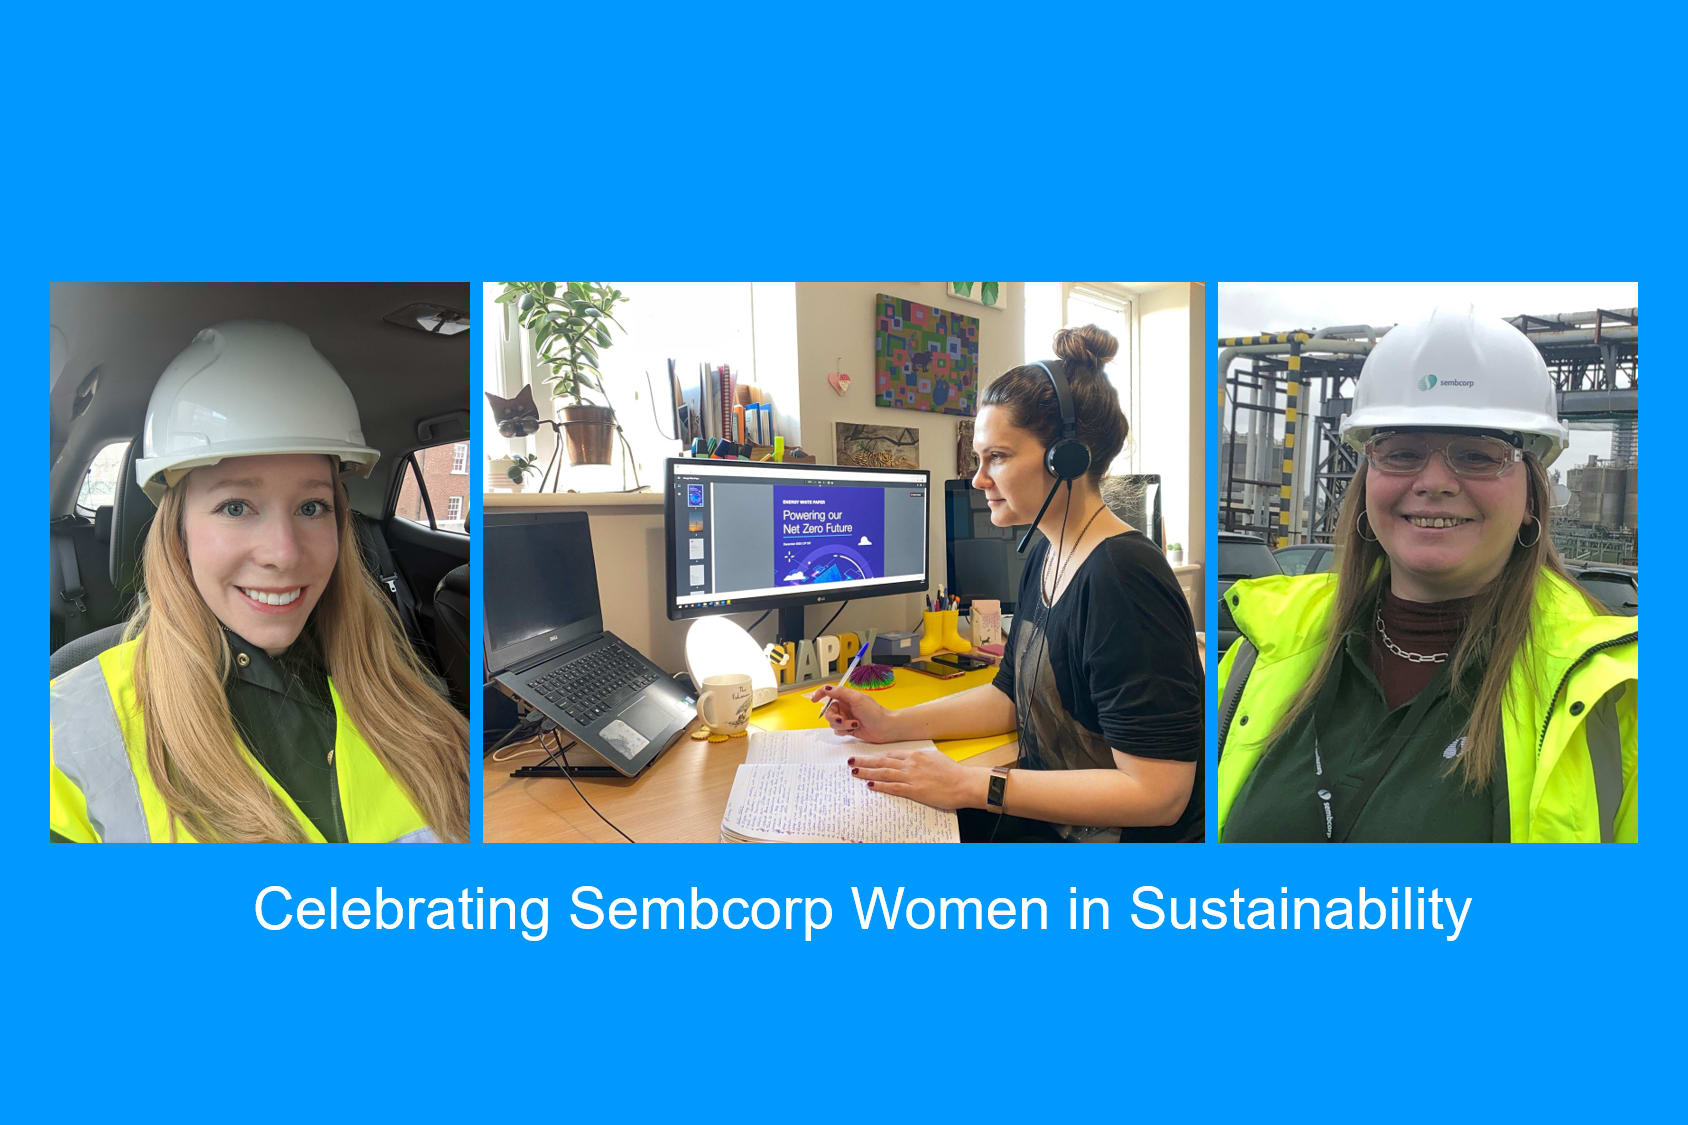 Celebrating Sembcorp women in sustainability